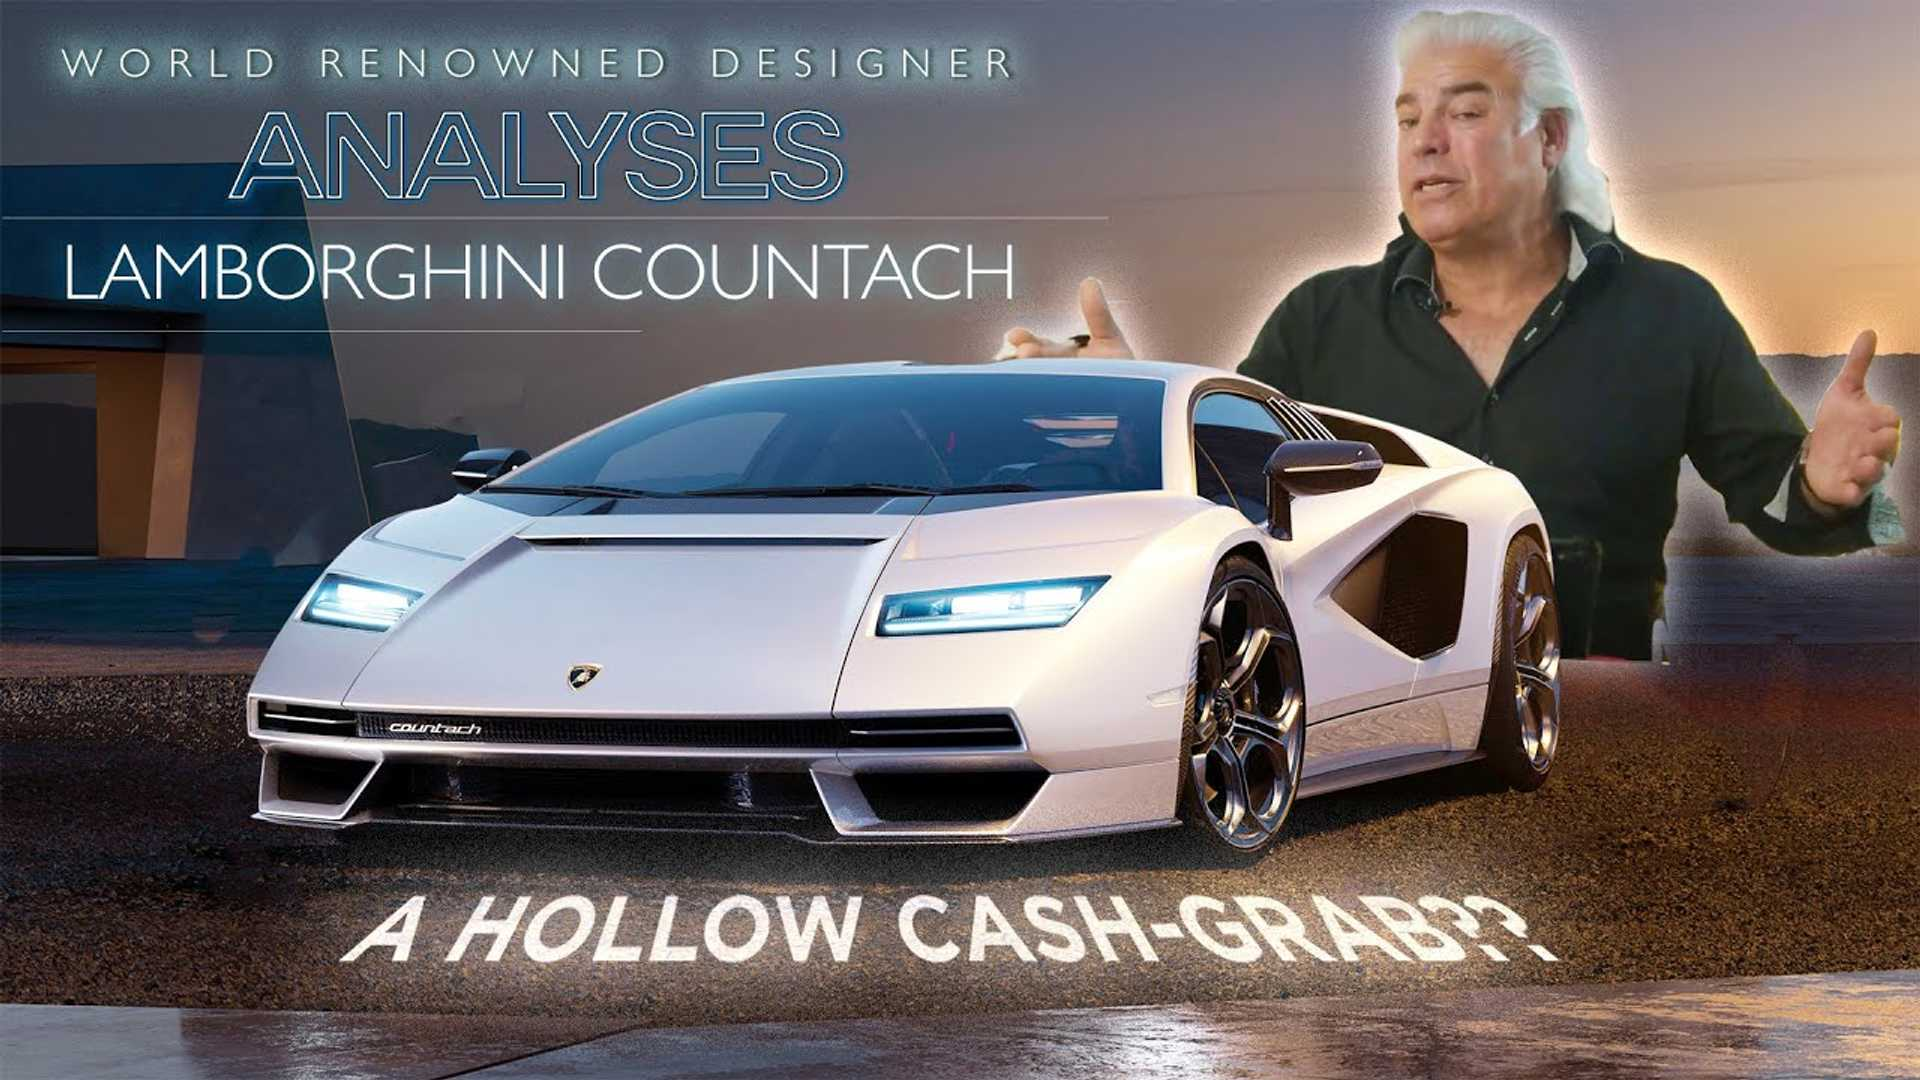 Iconic Auto Designer Weighs In On The New Lamborghini Countach